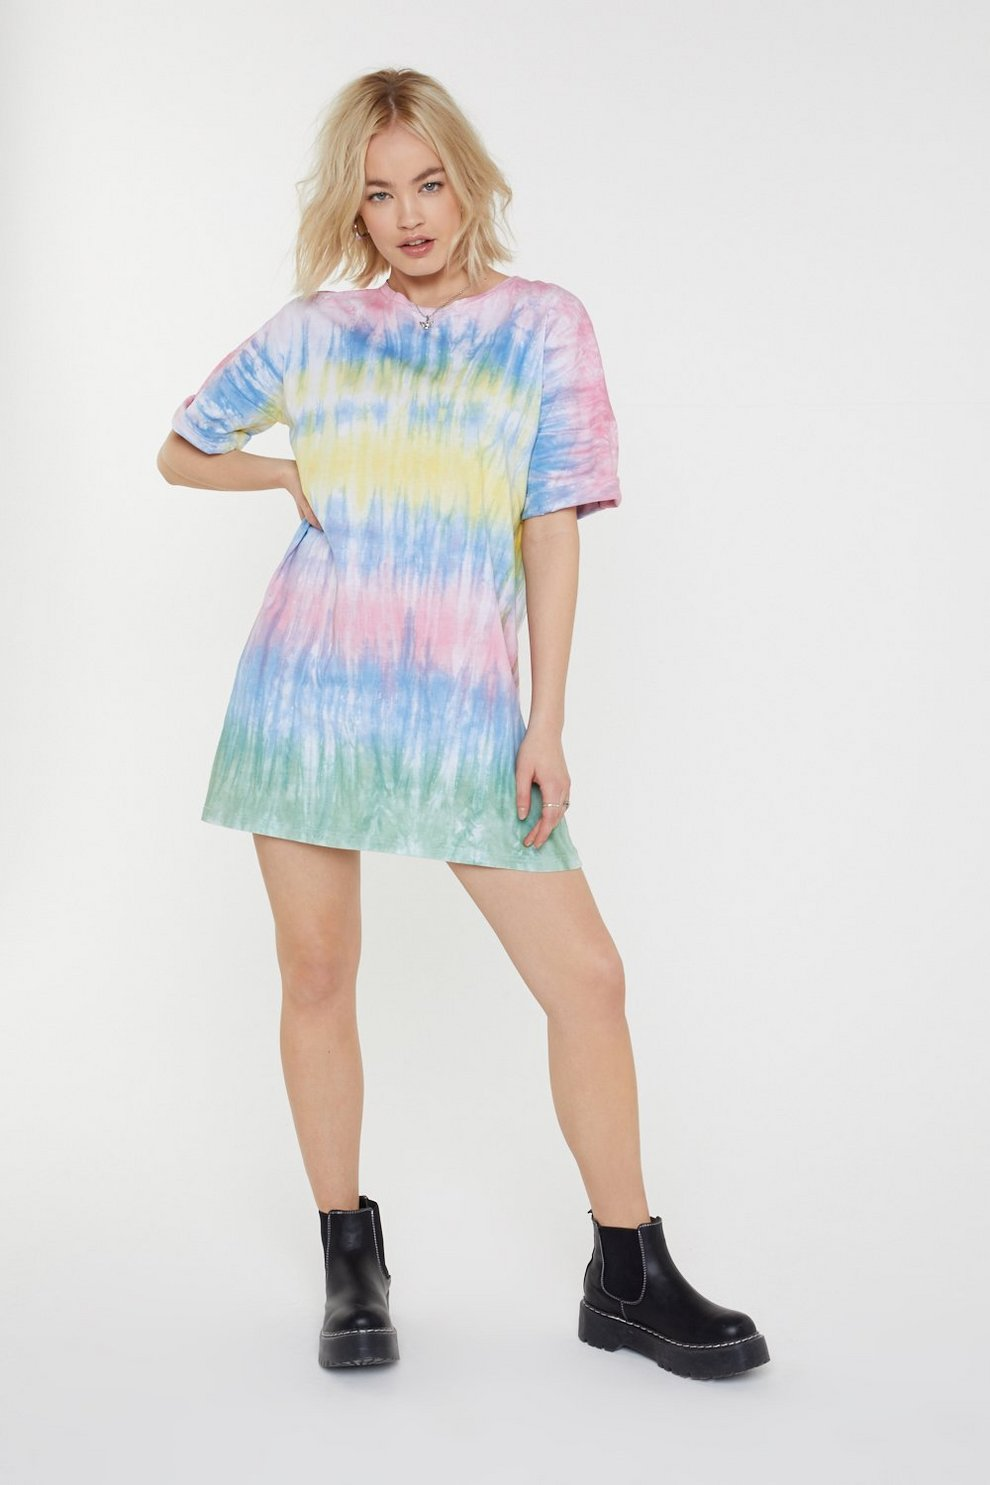 913064e862 Oversize Over Guys Tie Dye Mini Dress